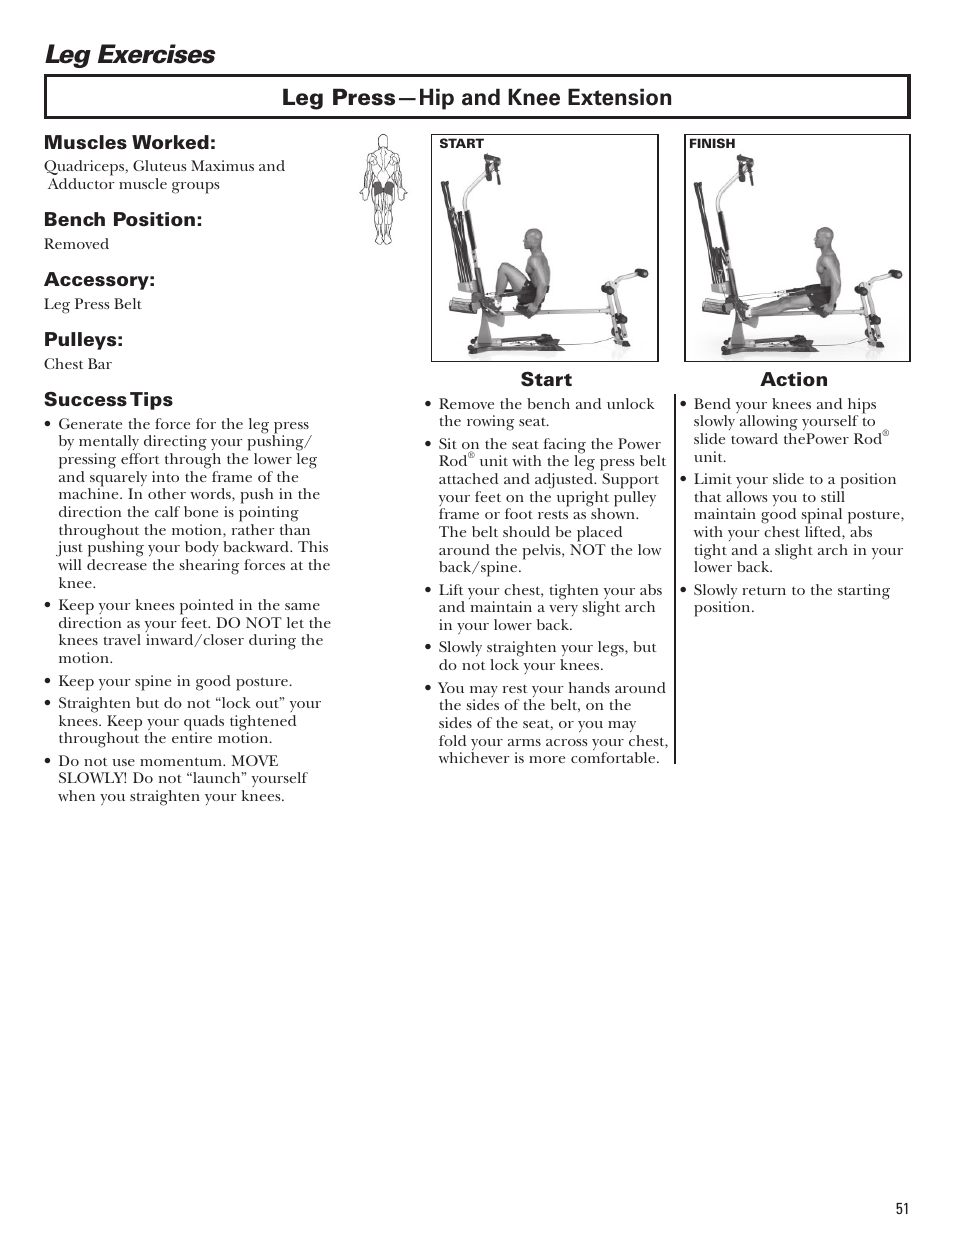 Leg Exercises Leg Press Hip And Knee Extension Bowflex Blaze